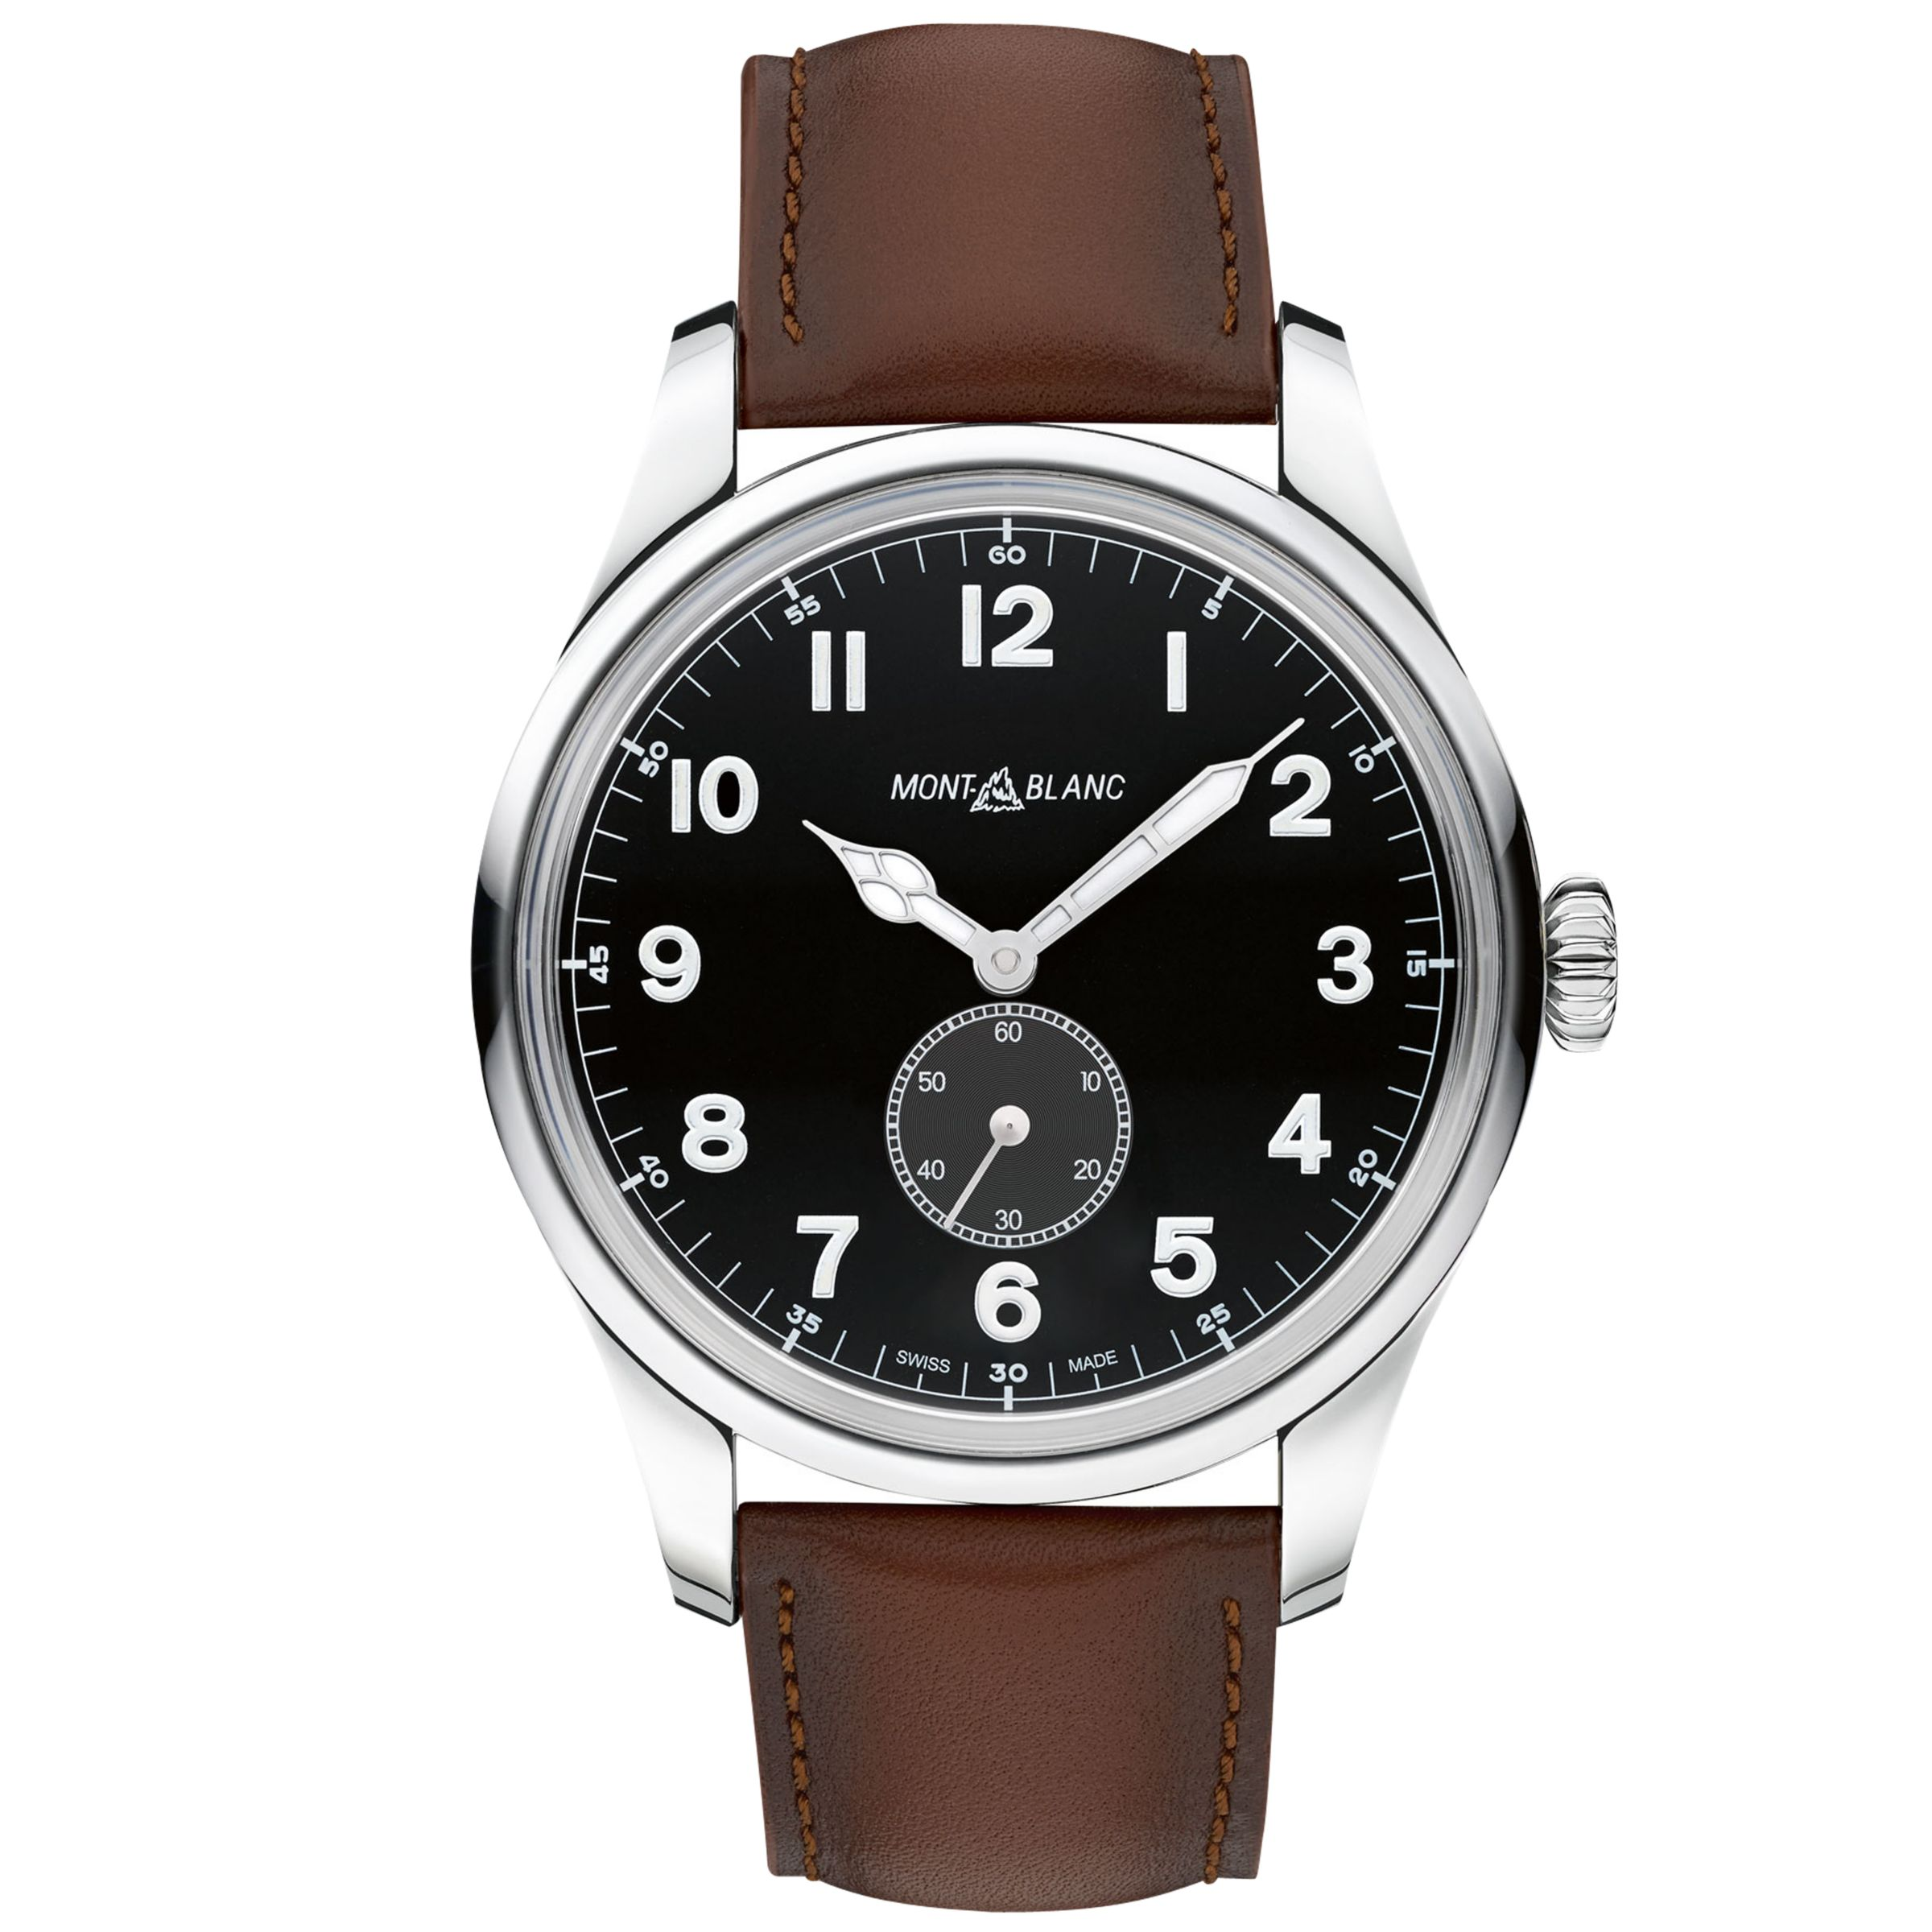 Montblanc Montblanc 115073 Men's 1858 Automatic Small Second Leather Strap Watch, Brown/Black